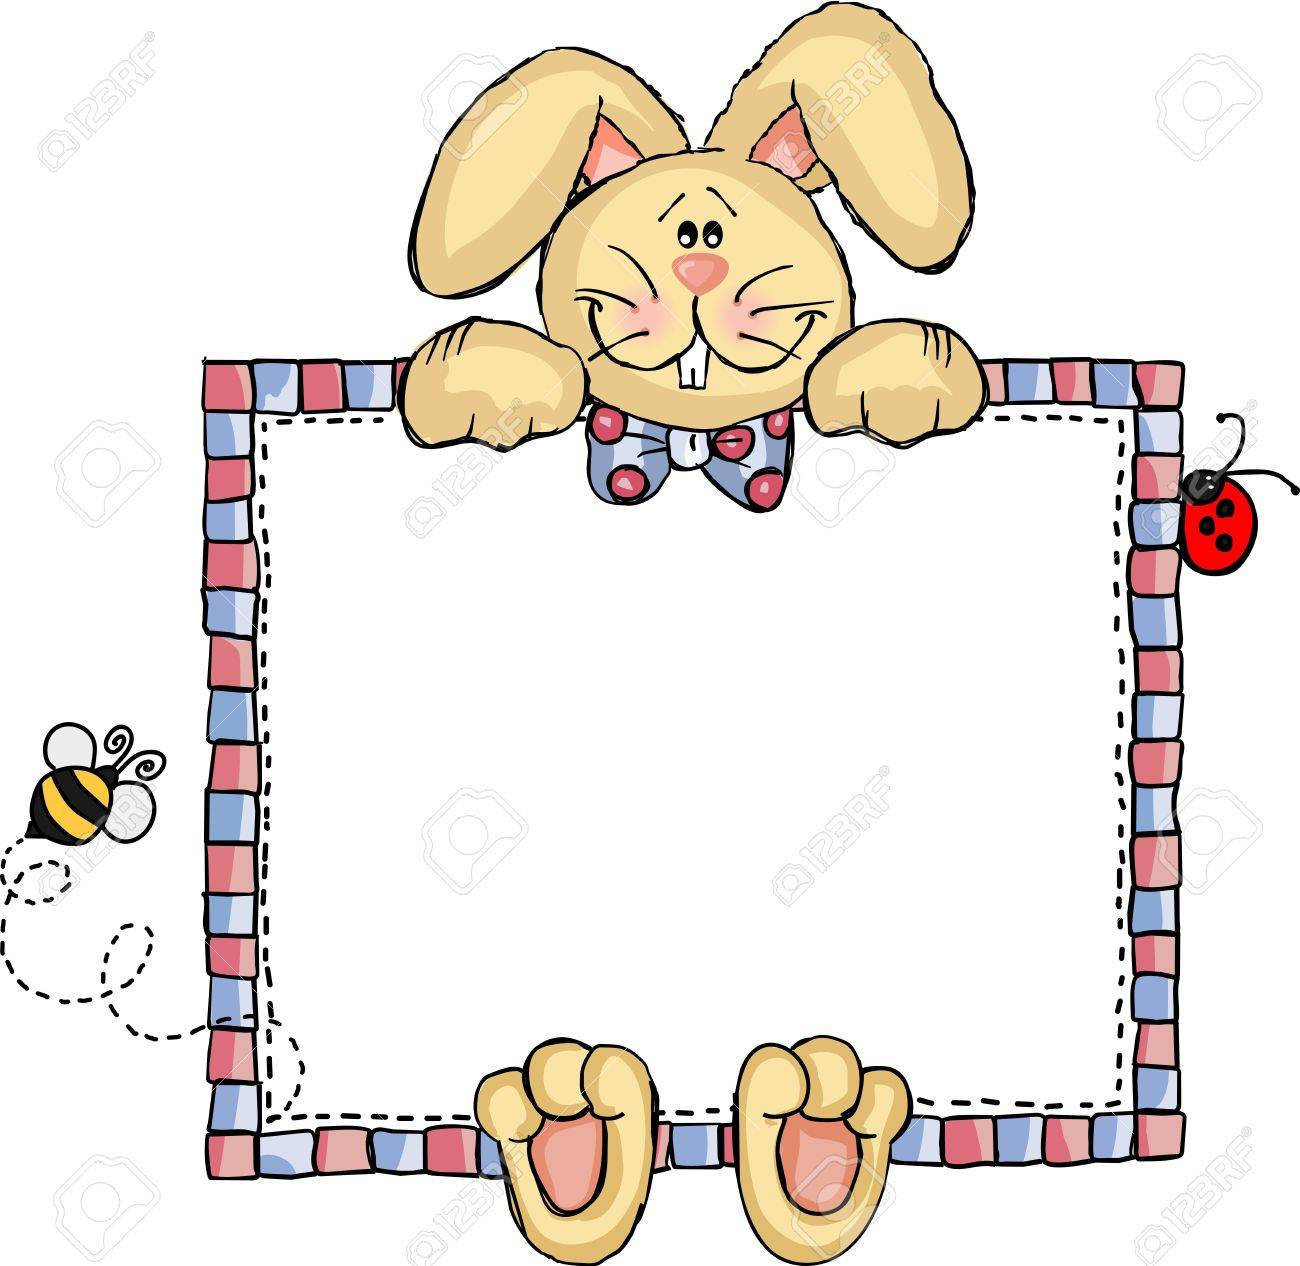 label frame bunny royalty free cliparts, vectors, and stock